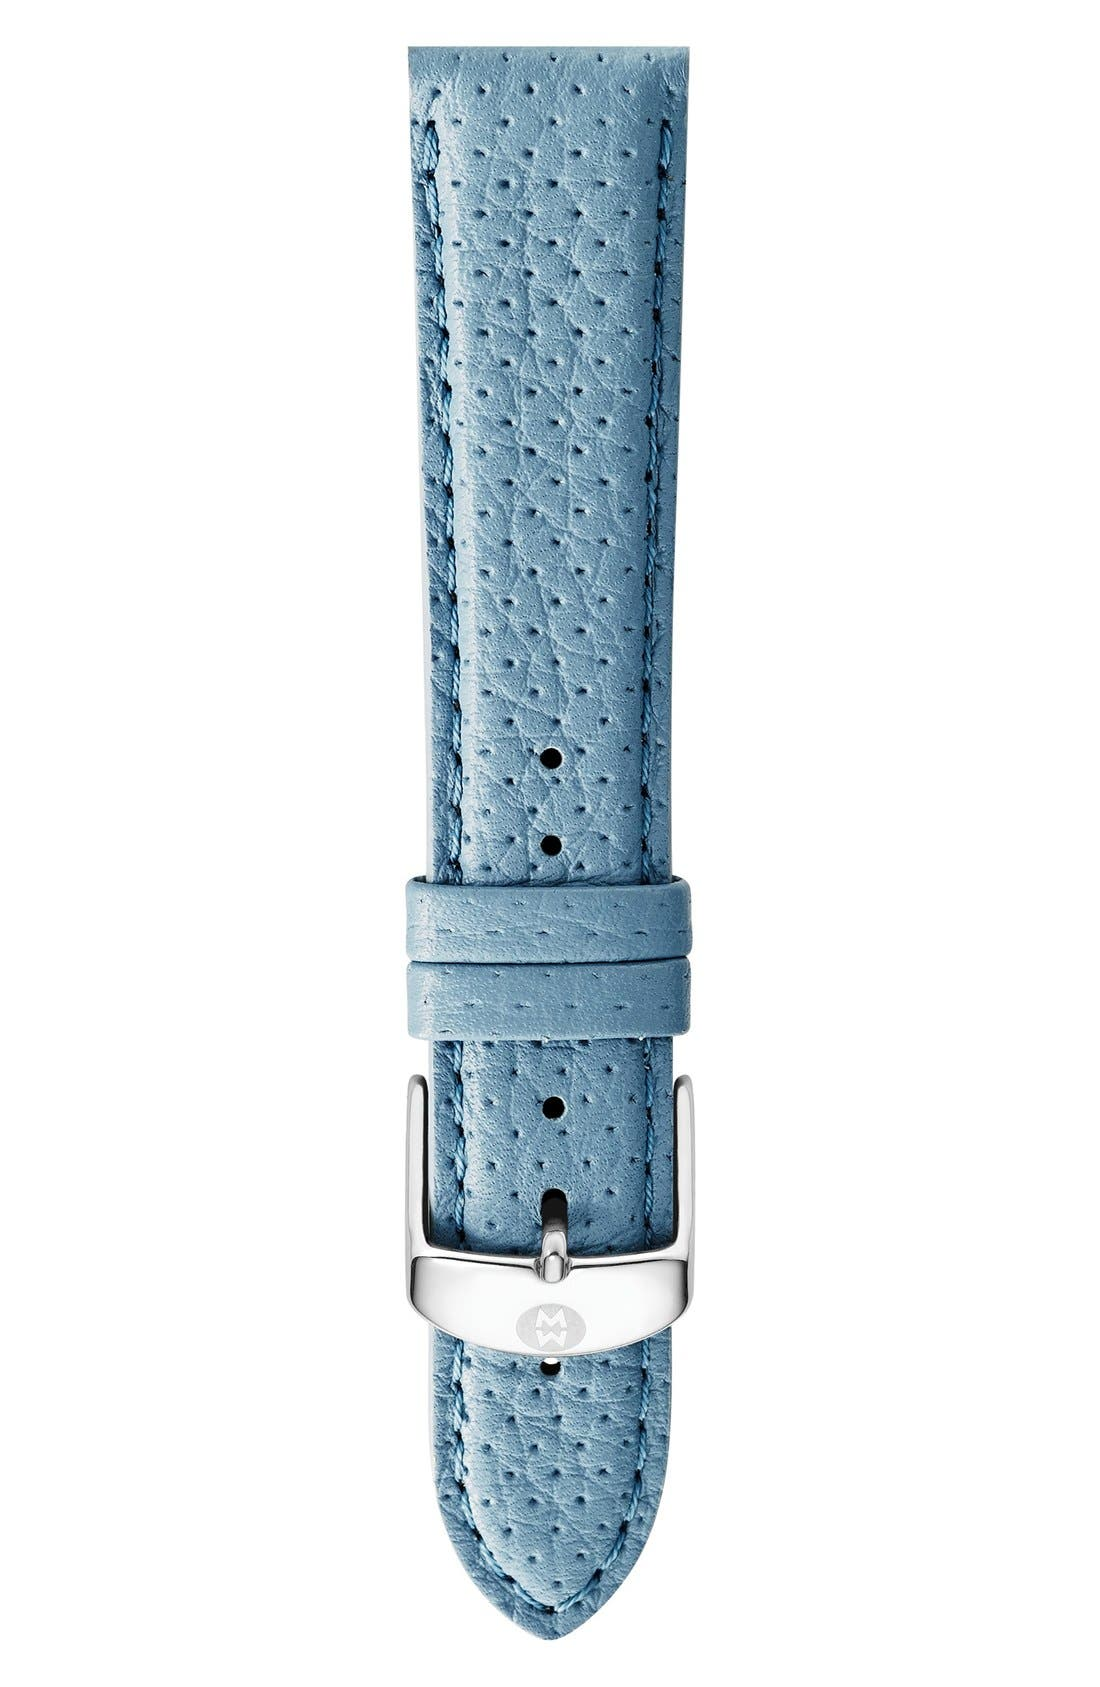 16mm Leather Watch Strap,                             Main thumbnail 11, color,